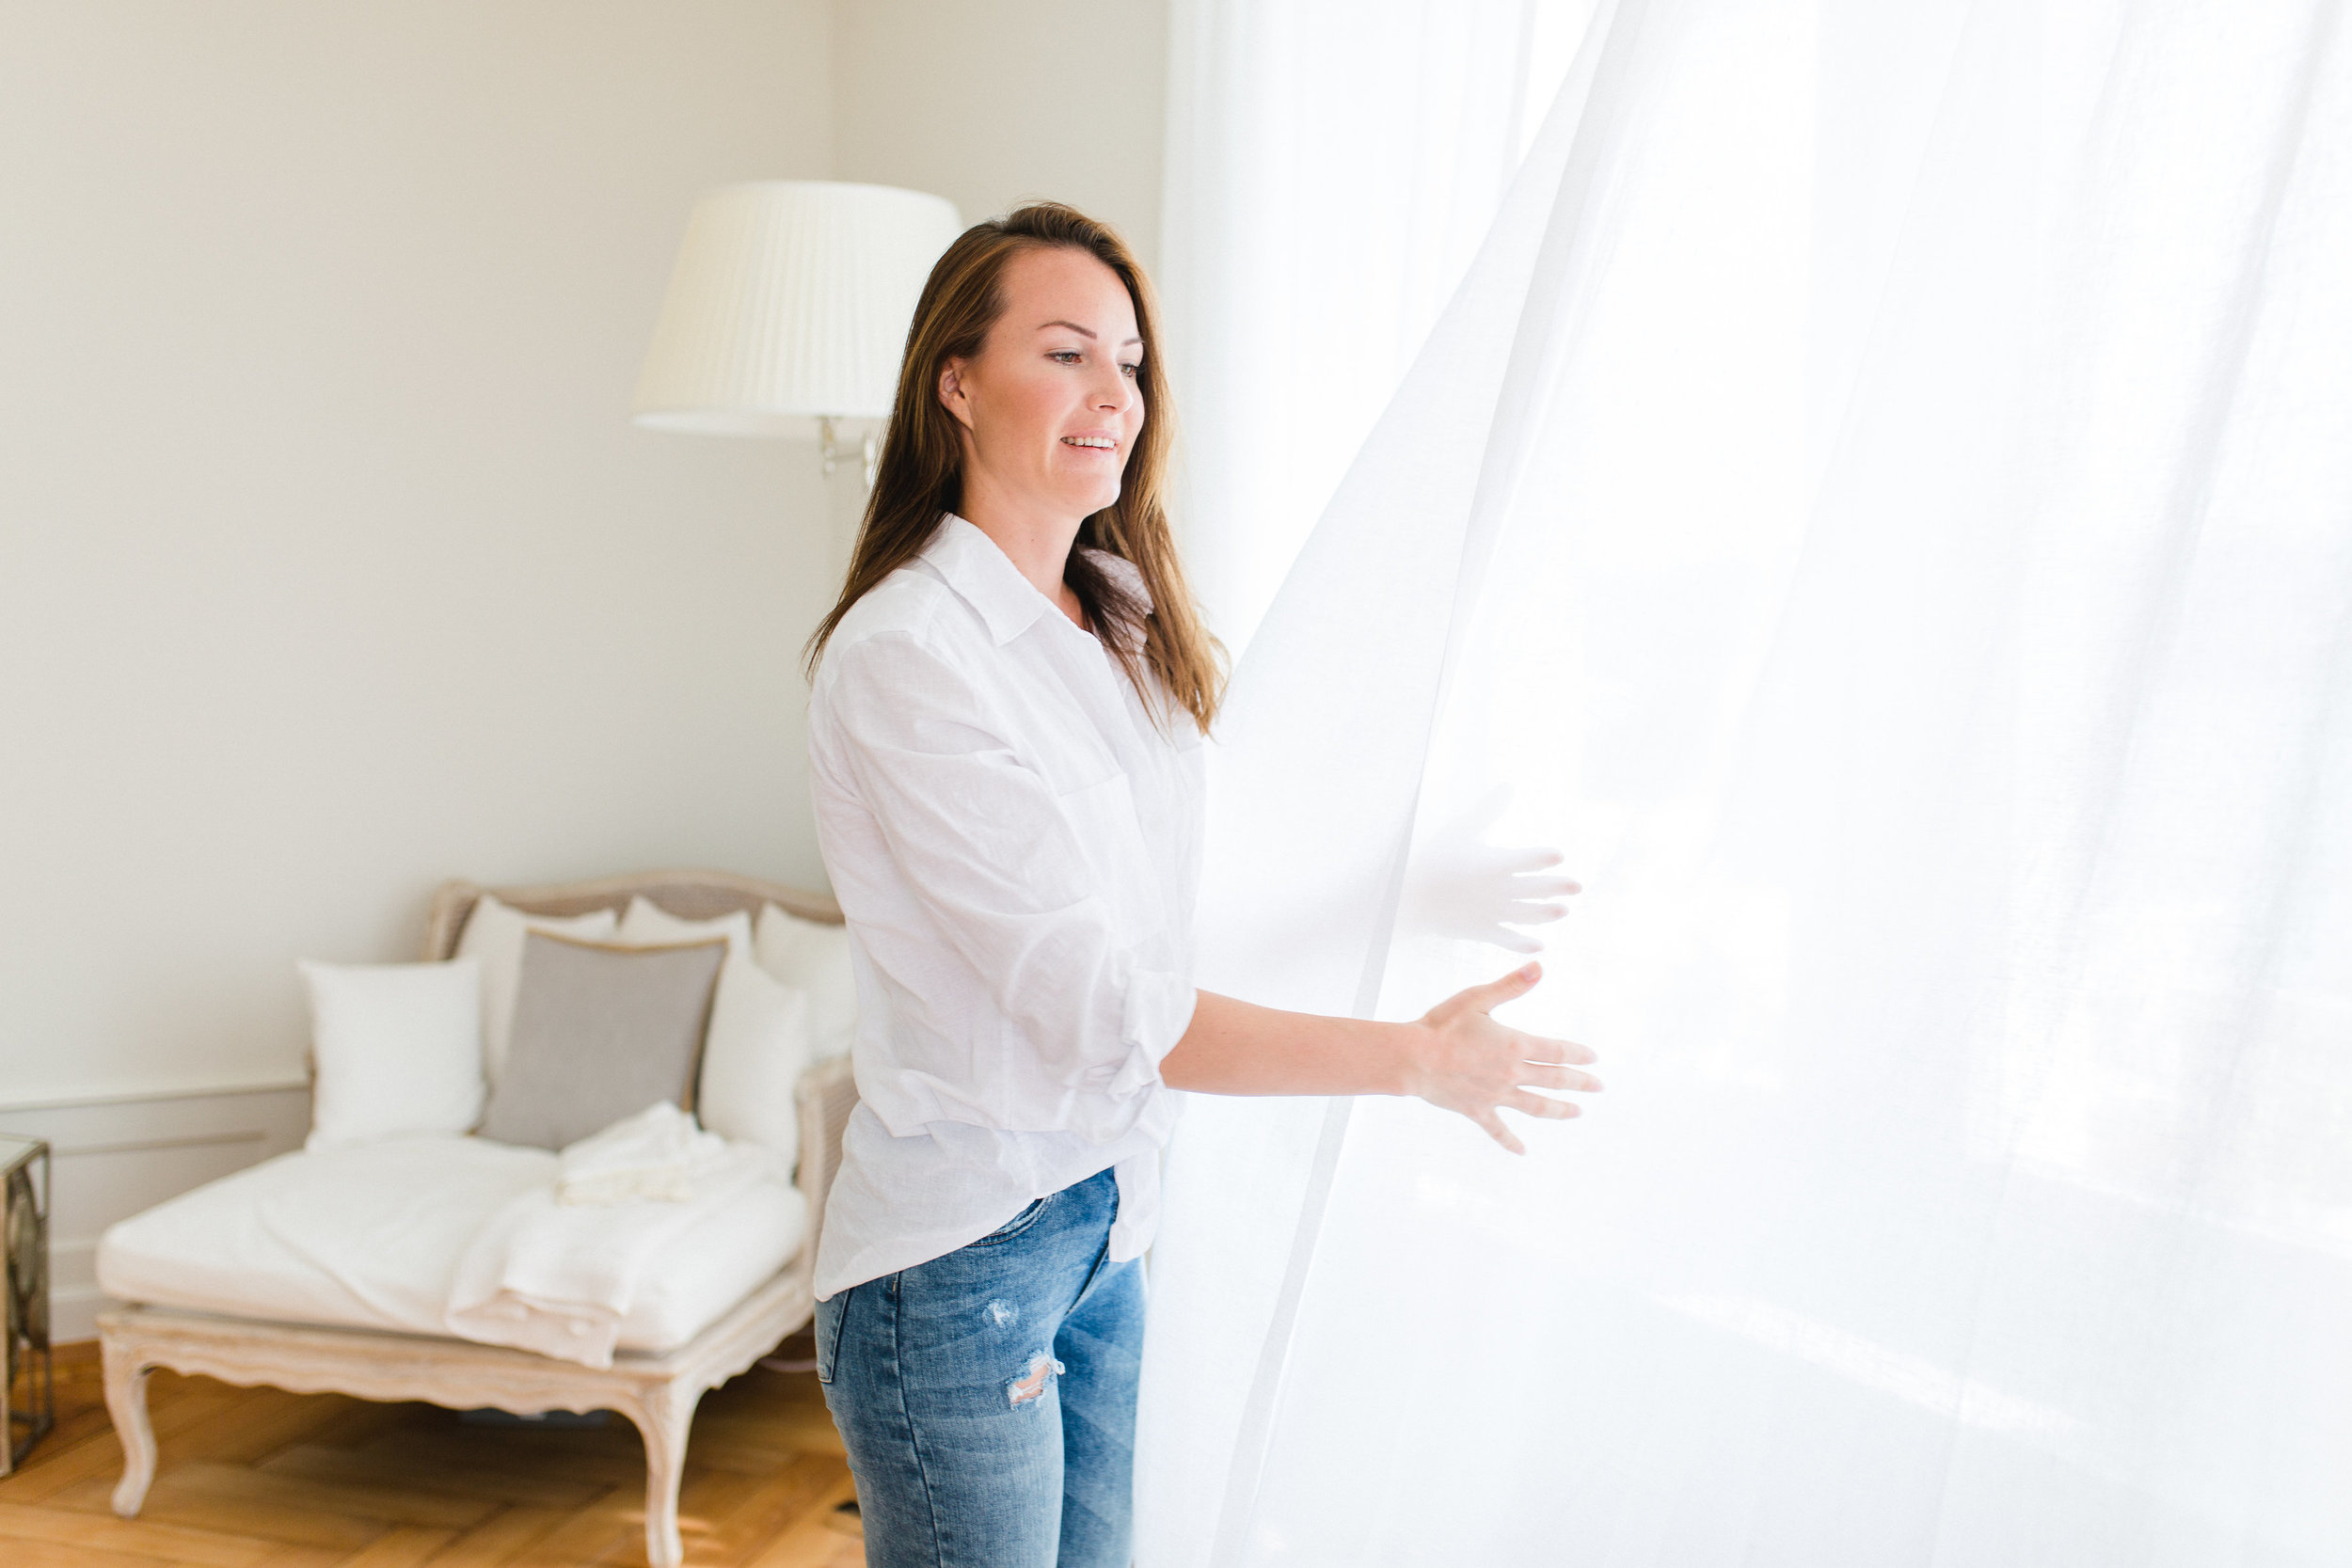 Homestyling: 4 most important things when styling your home for viewing